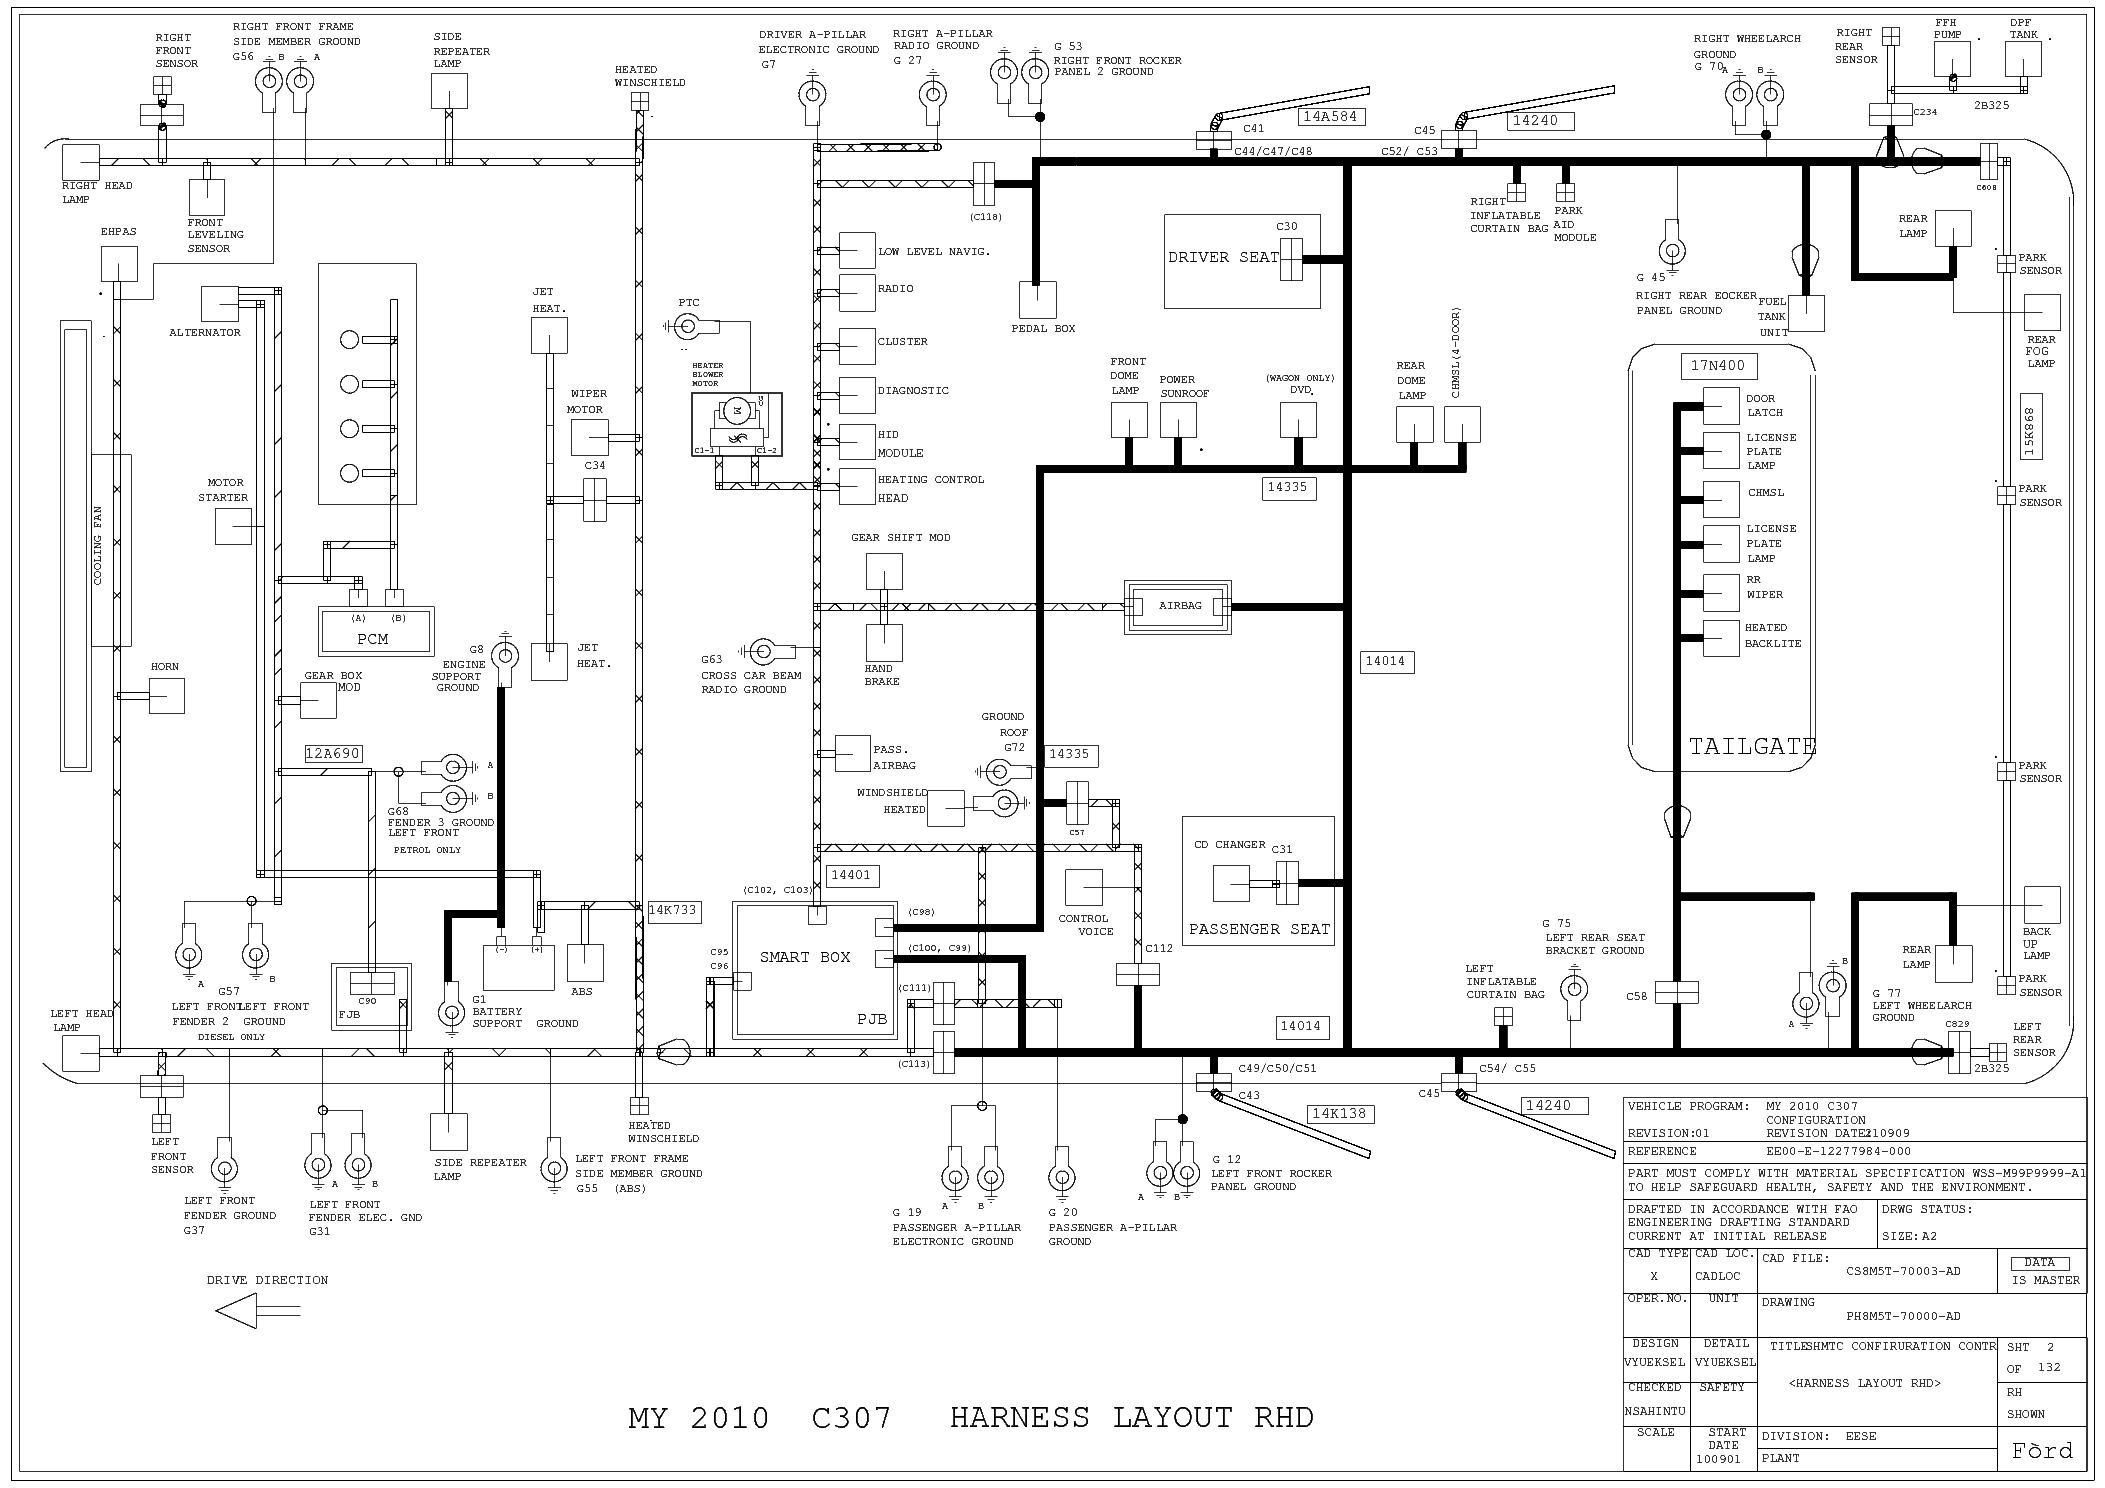 Ford Focu Wiring Diagram Pdf